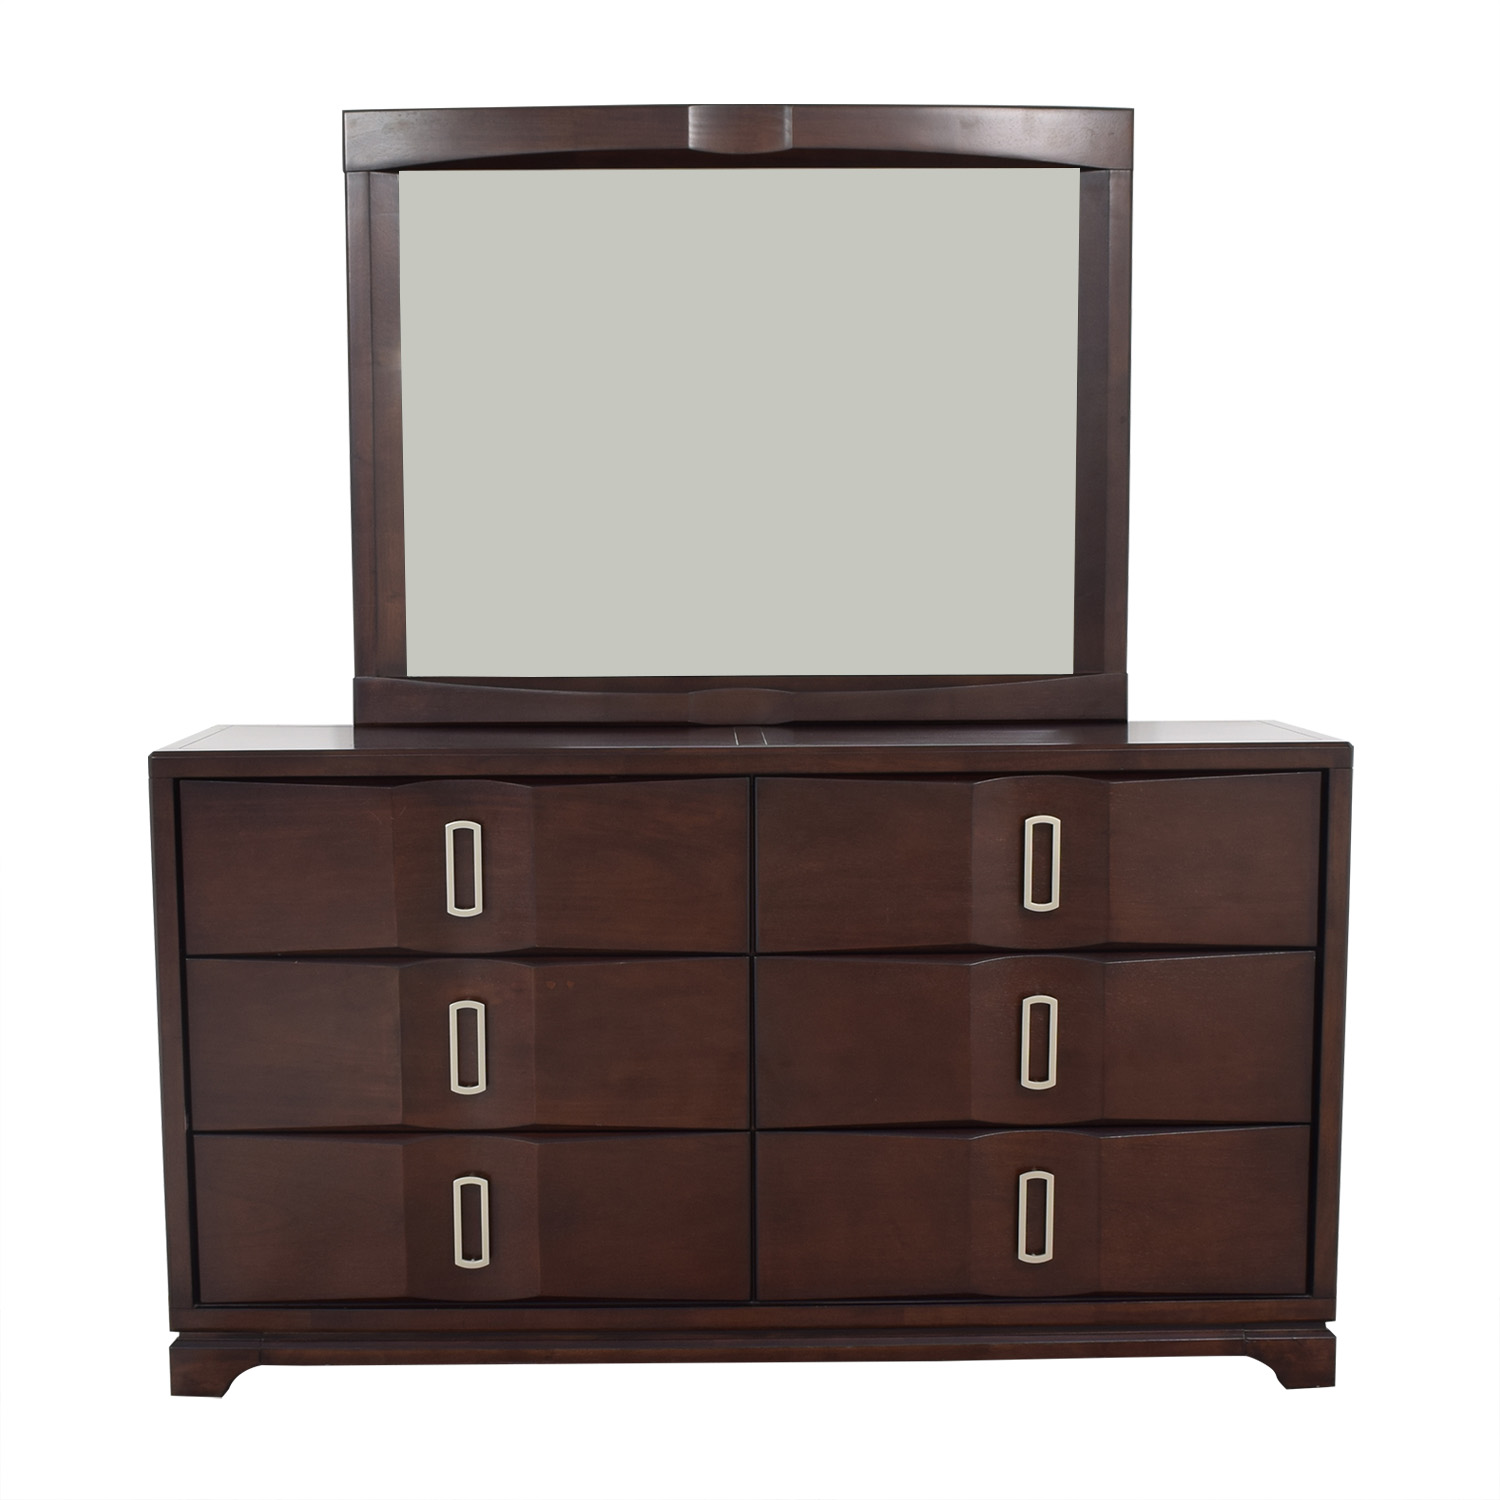 Casana Furniture Casana Furniture Dresser with Mirror pa